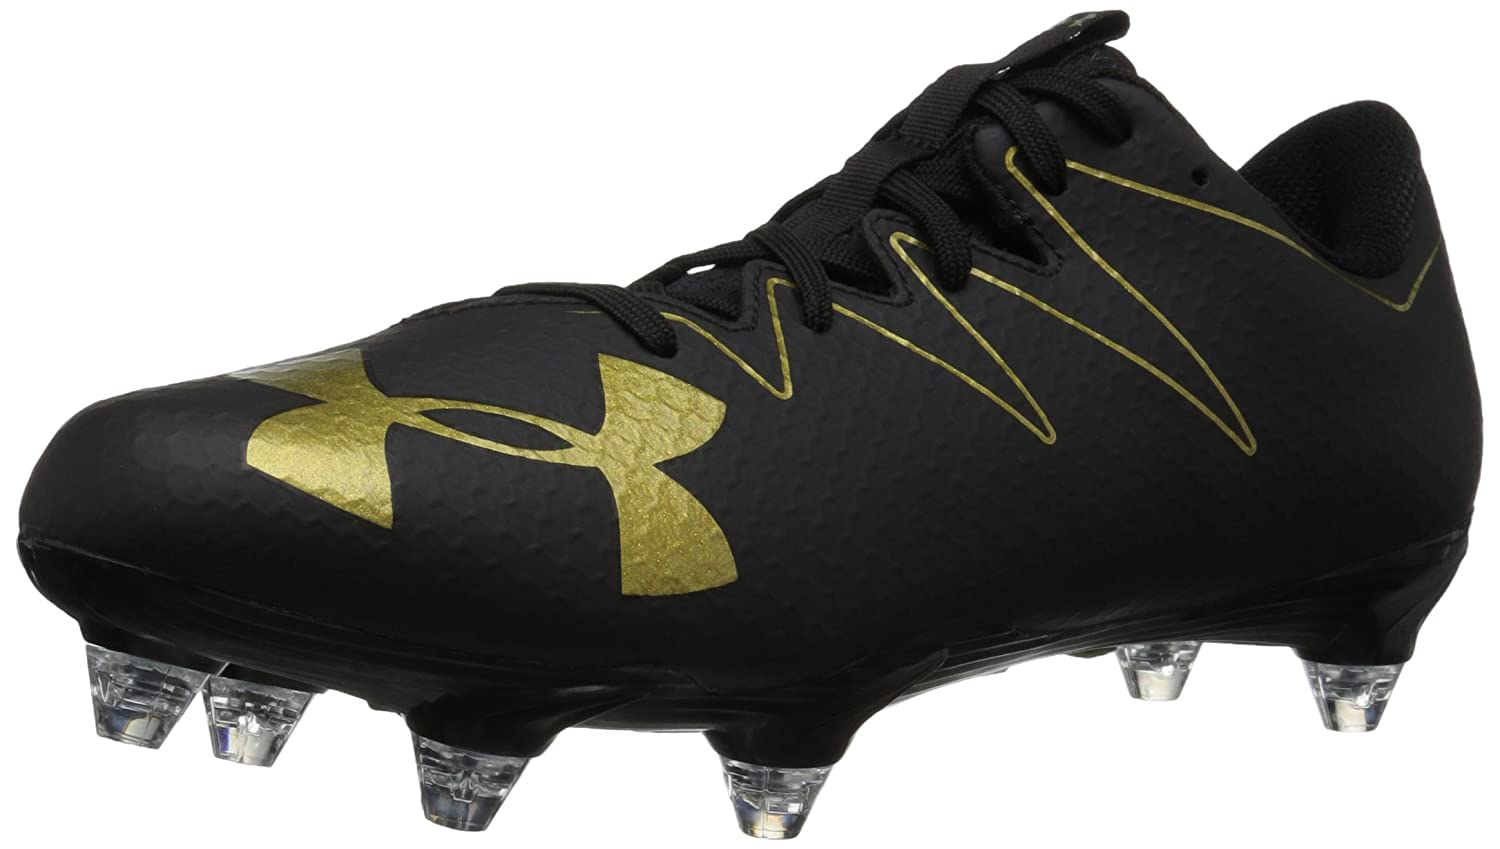 Under Armour Men's Nitro Low D Rugby Shoe, Black/Metallic Gold B072BY2277 7 M US|Black